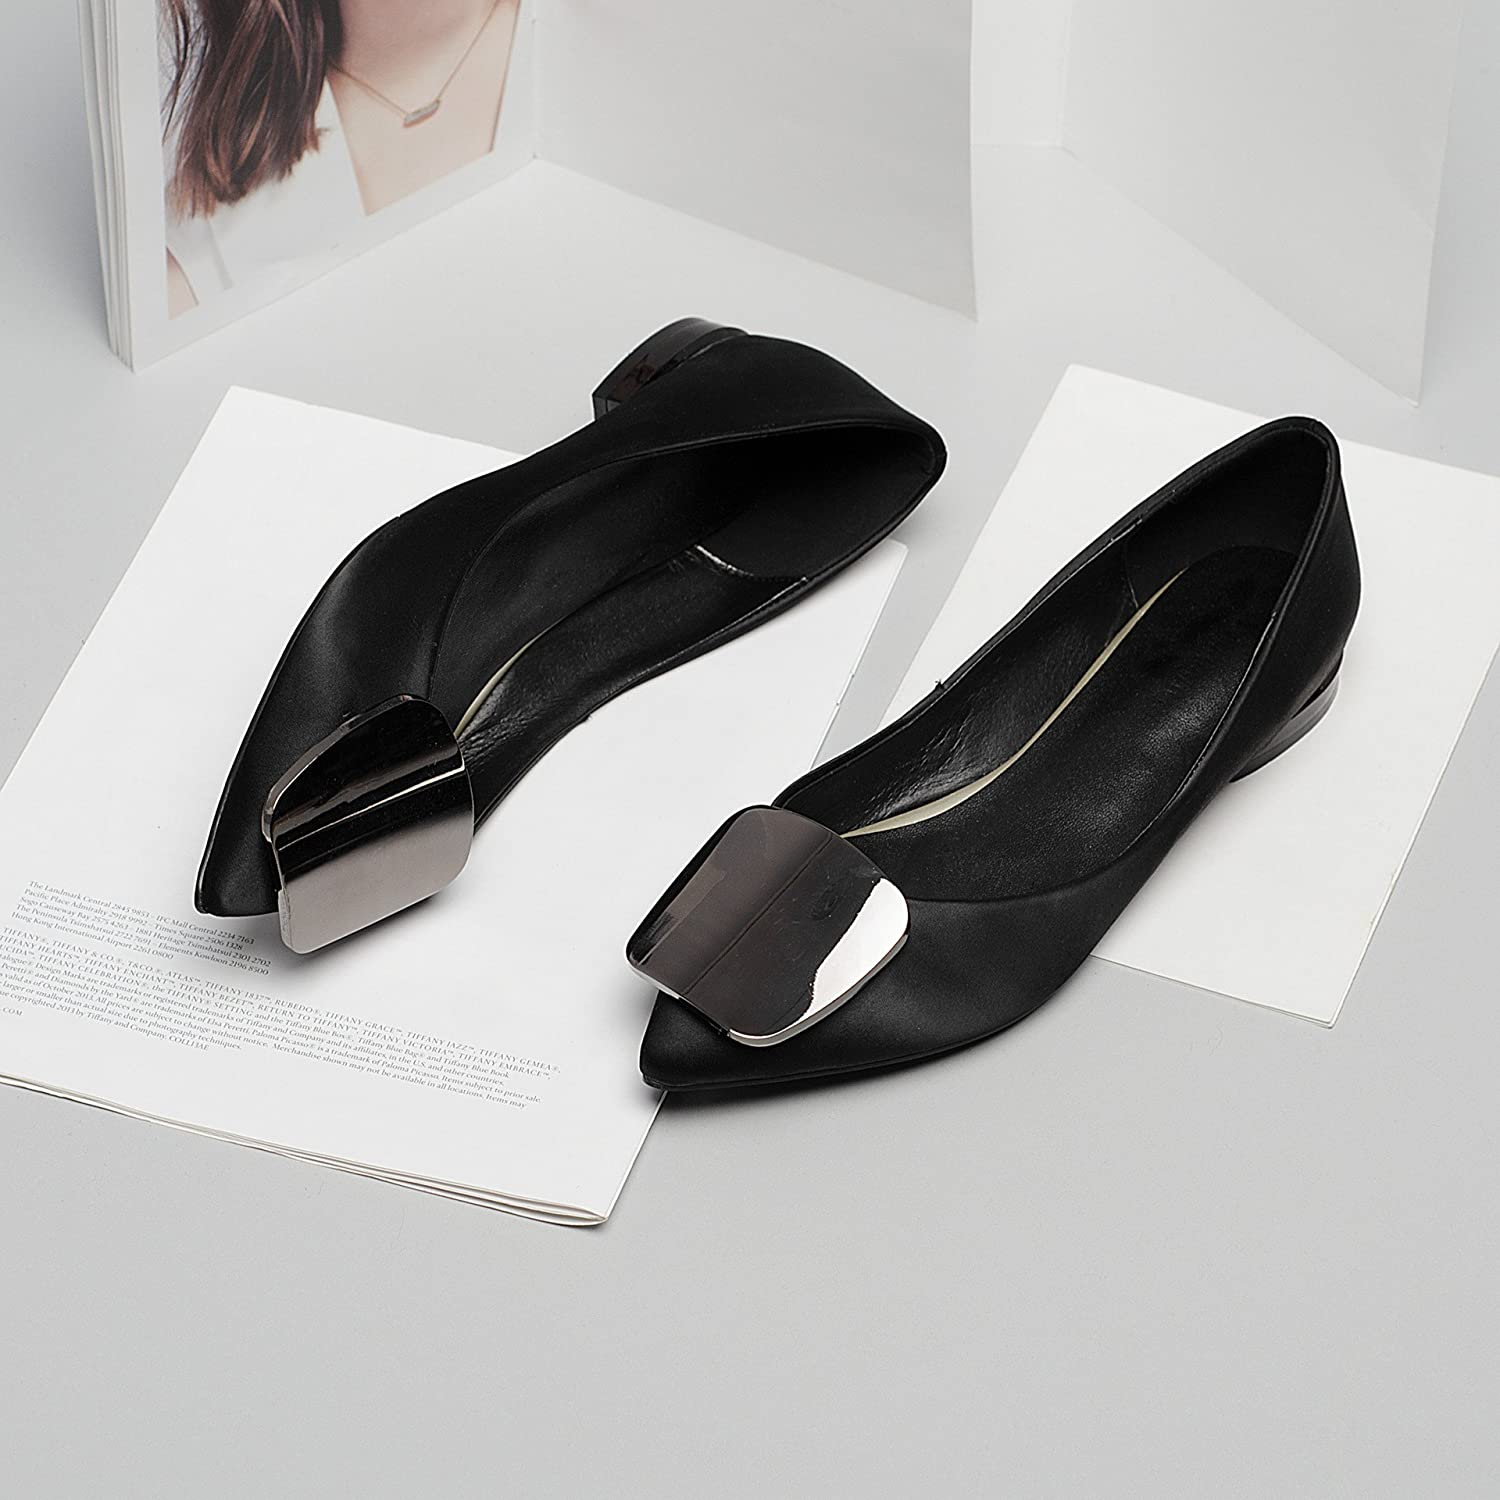 Bule Moocow BCOW Leather shoes Ms. Pointed Mouth Flat Heels Metal Side Deduction Deduction shoes Flat shoes